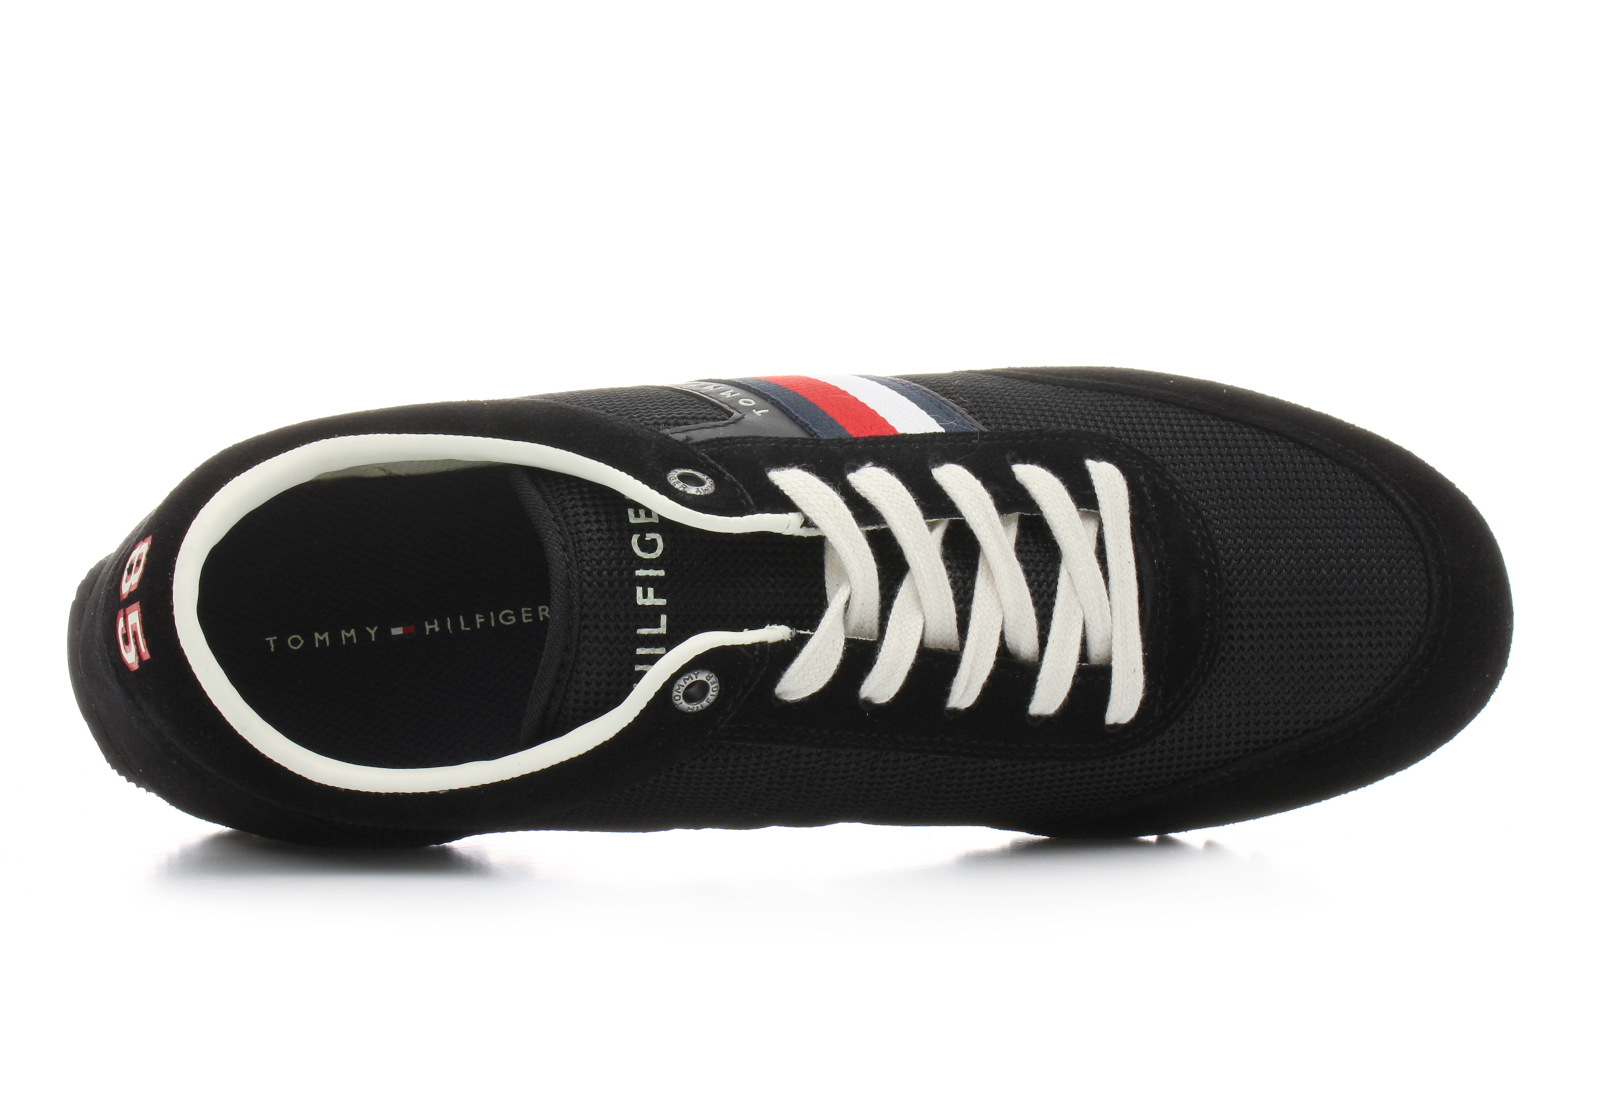 fc6e390a0d Tommy Hilfiger Shoes - Branson 14 - 18S-1314-990 - Online shop for ...